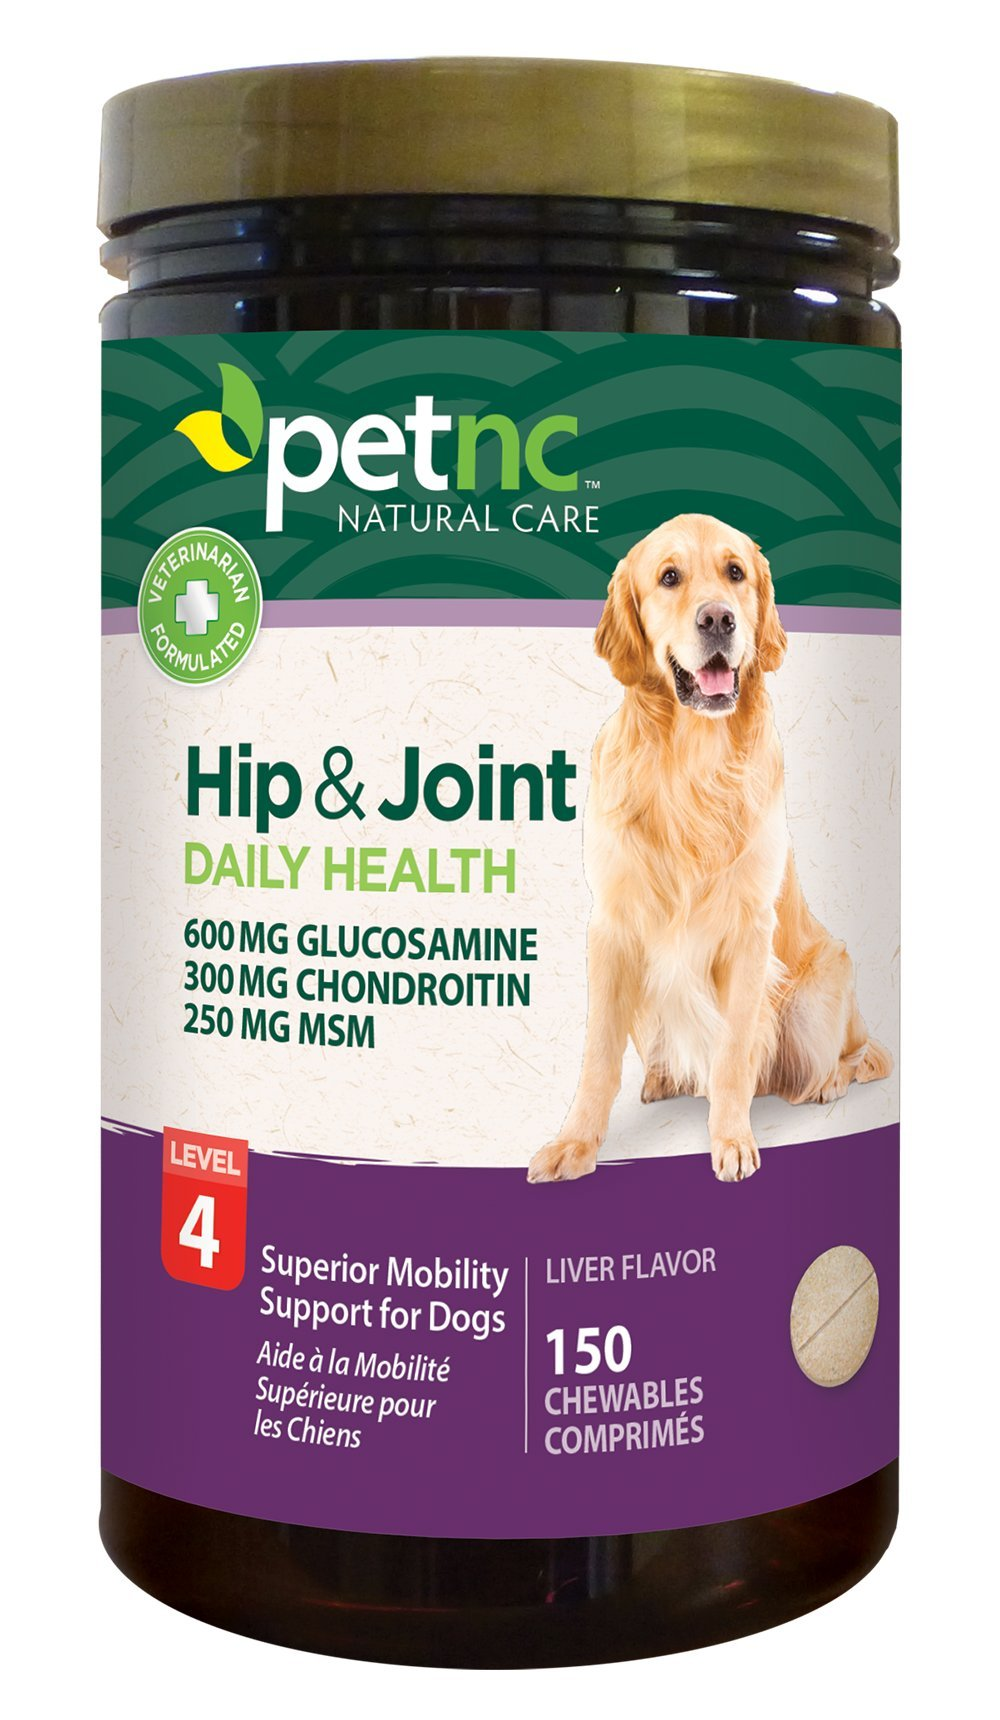 PetNC Natural Care Hip & Joint Health Level 4 by PetNC Natural Care